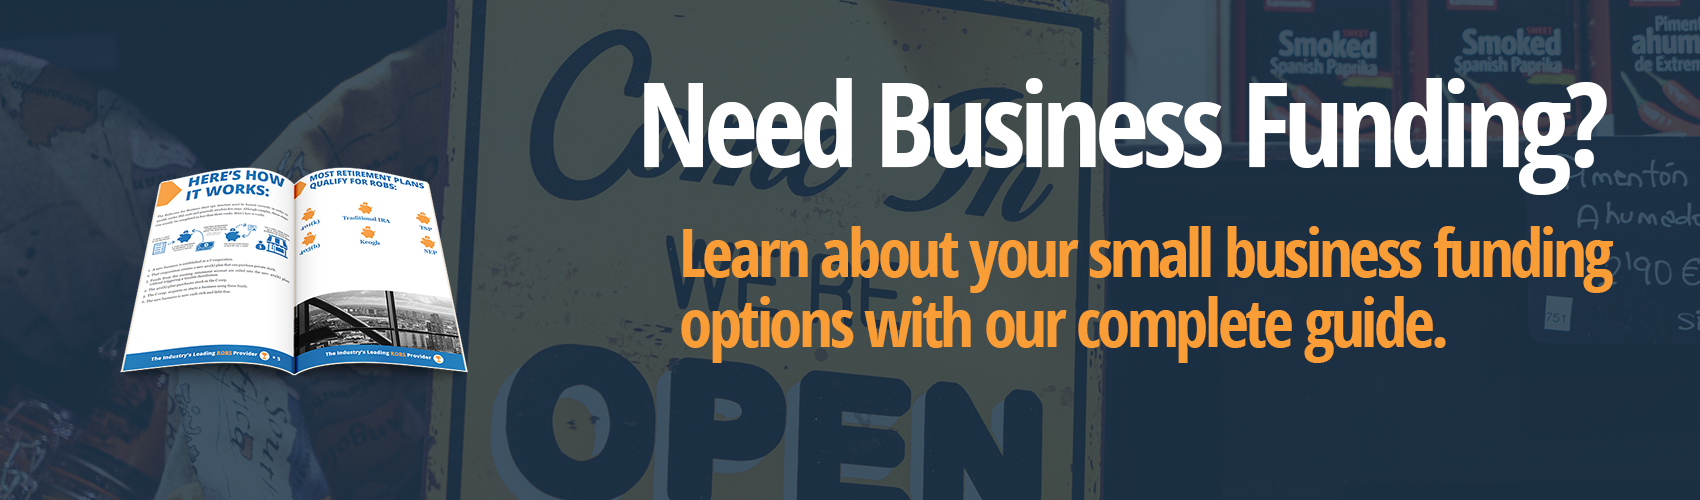 Small business funding guide banner image